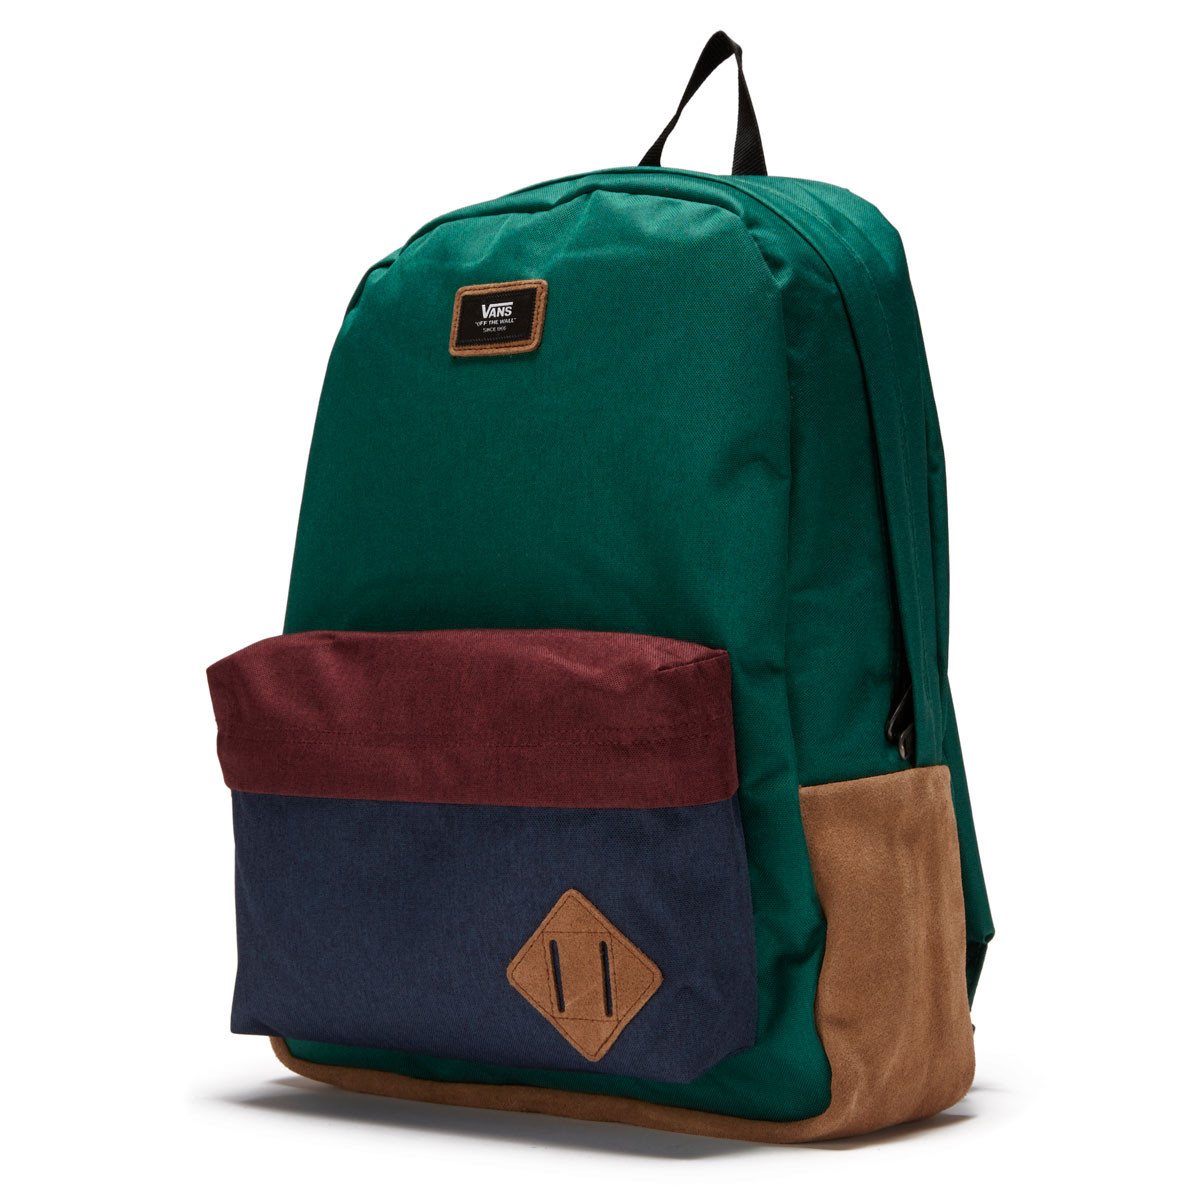 przed Sprzedaż style mody wylot online Vans Old Skool Backpack - Evergreen/Dress Blues